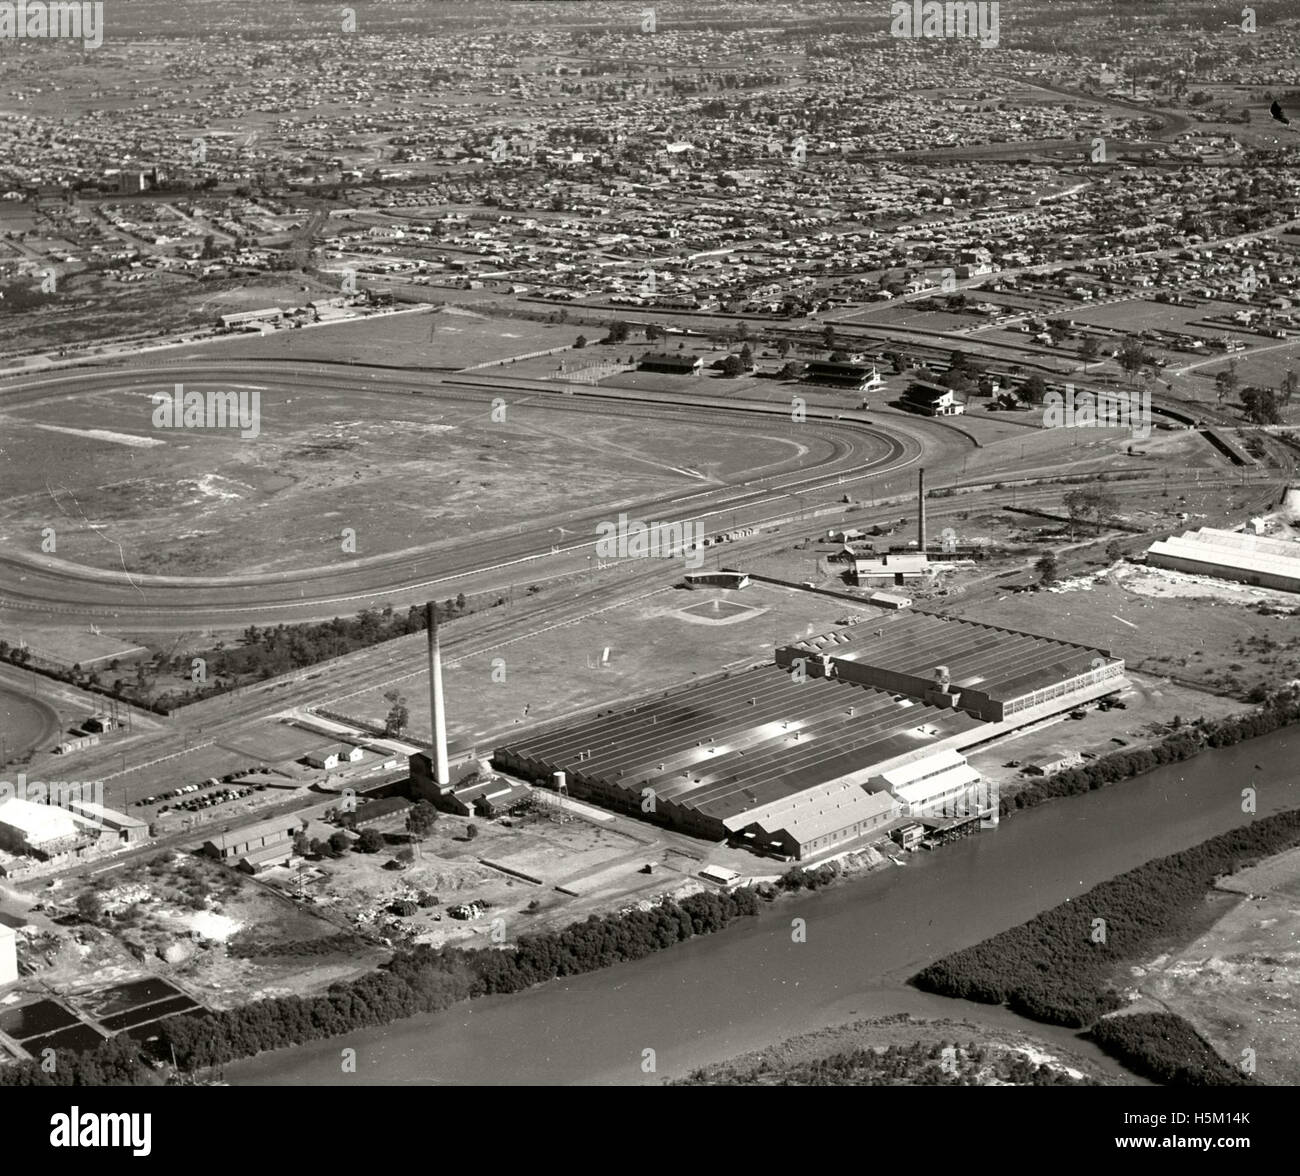 Goodyear Tyre Company Factory Granville - 13 Aug 1936 - Stock Image